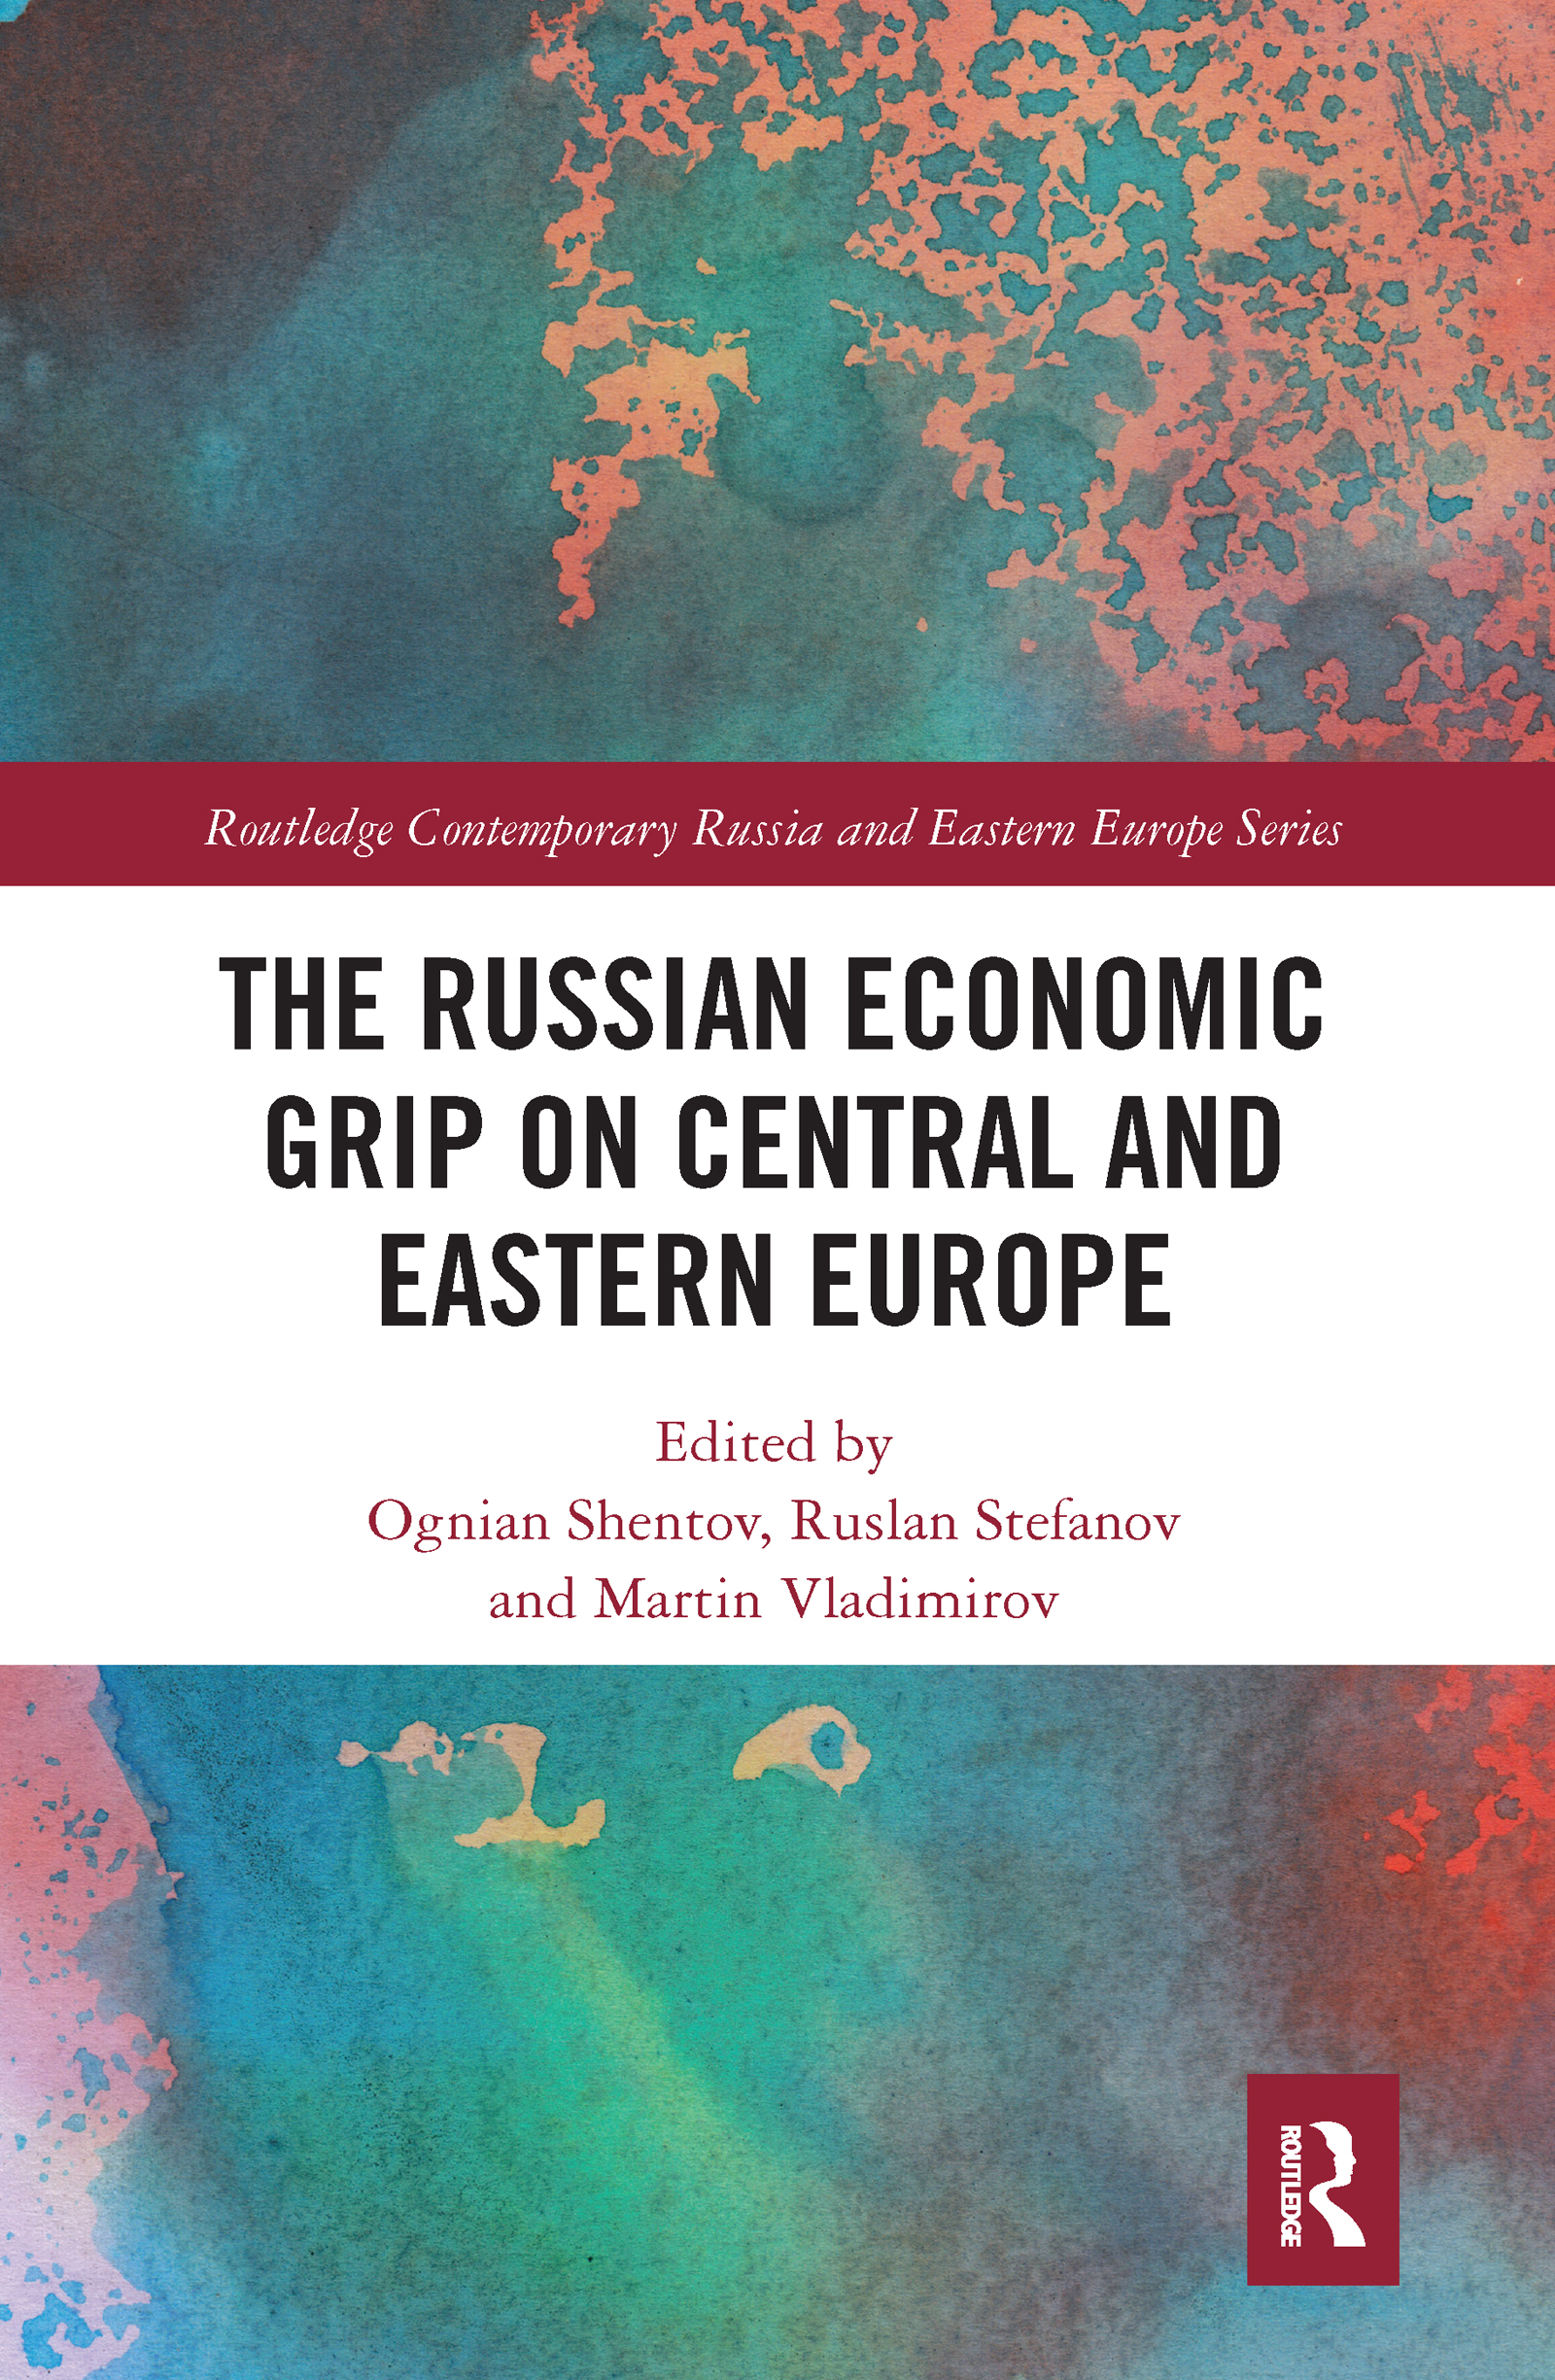 The Russian Economic Grip on Central and Eastern Europe